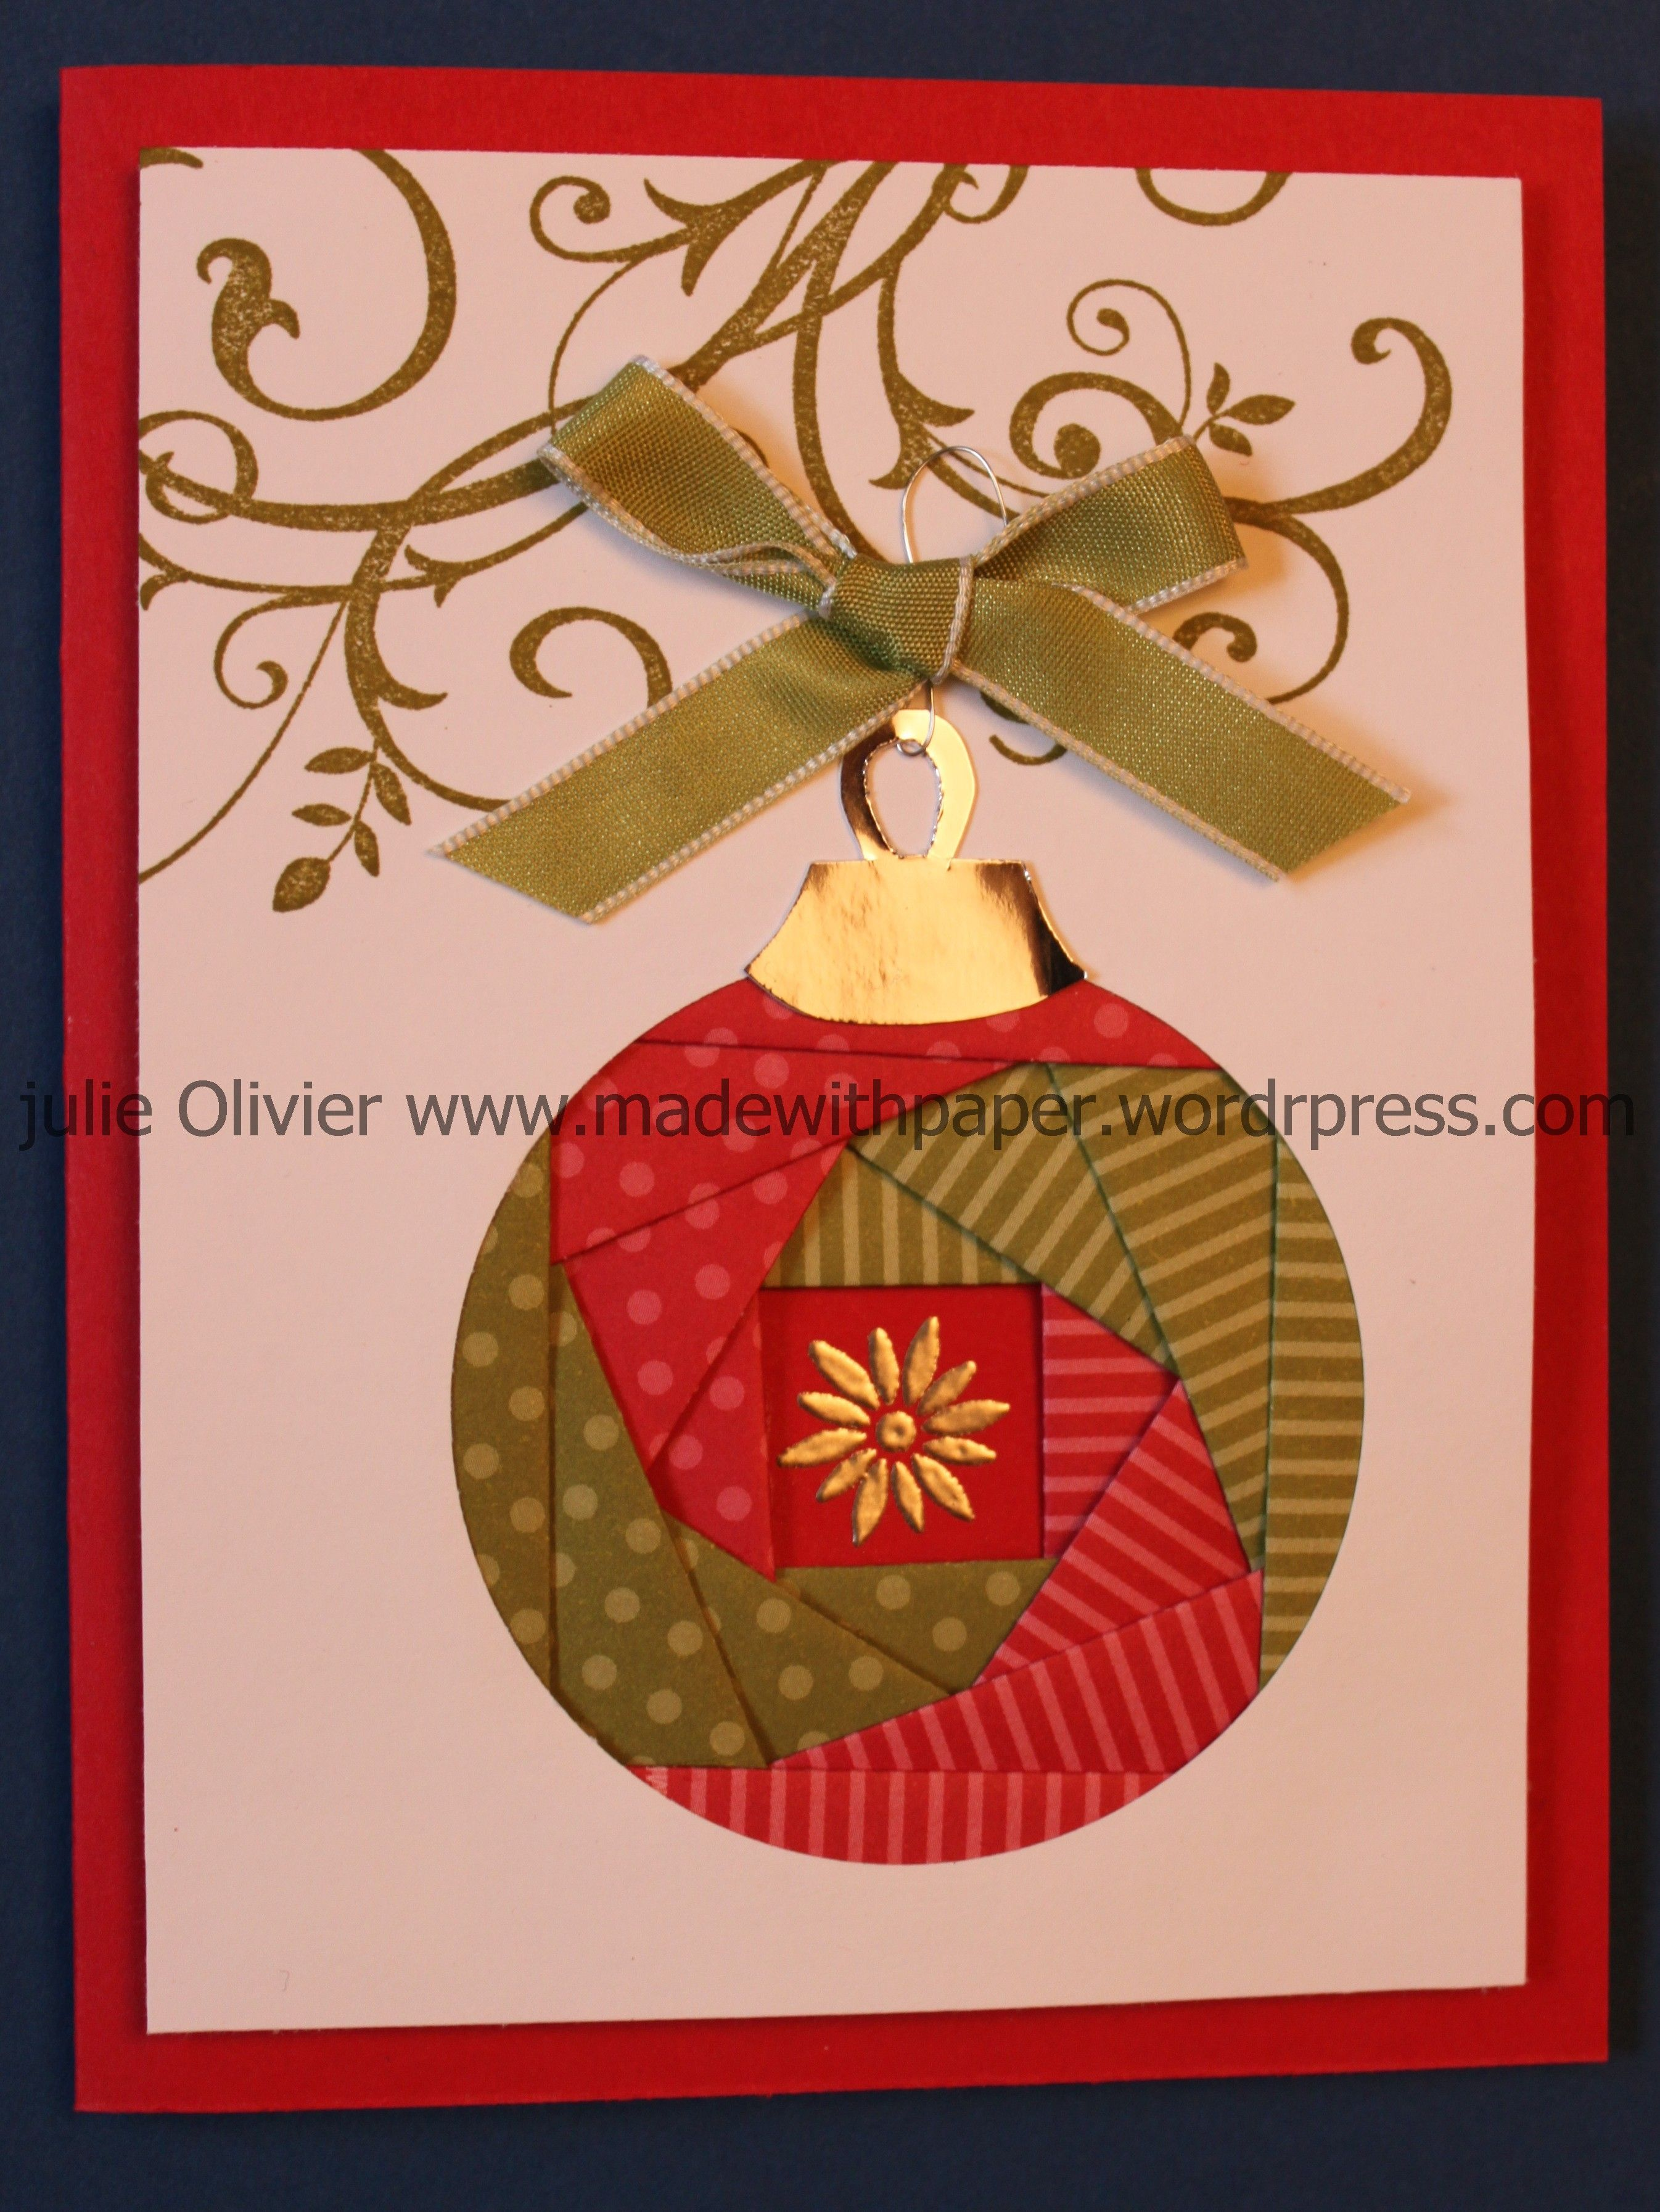 Iris Folding Christmas Ornament Iris Folding Templates Folded Christmas Cards Iris Folding Pattern